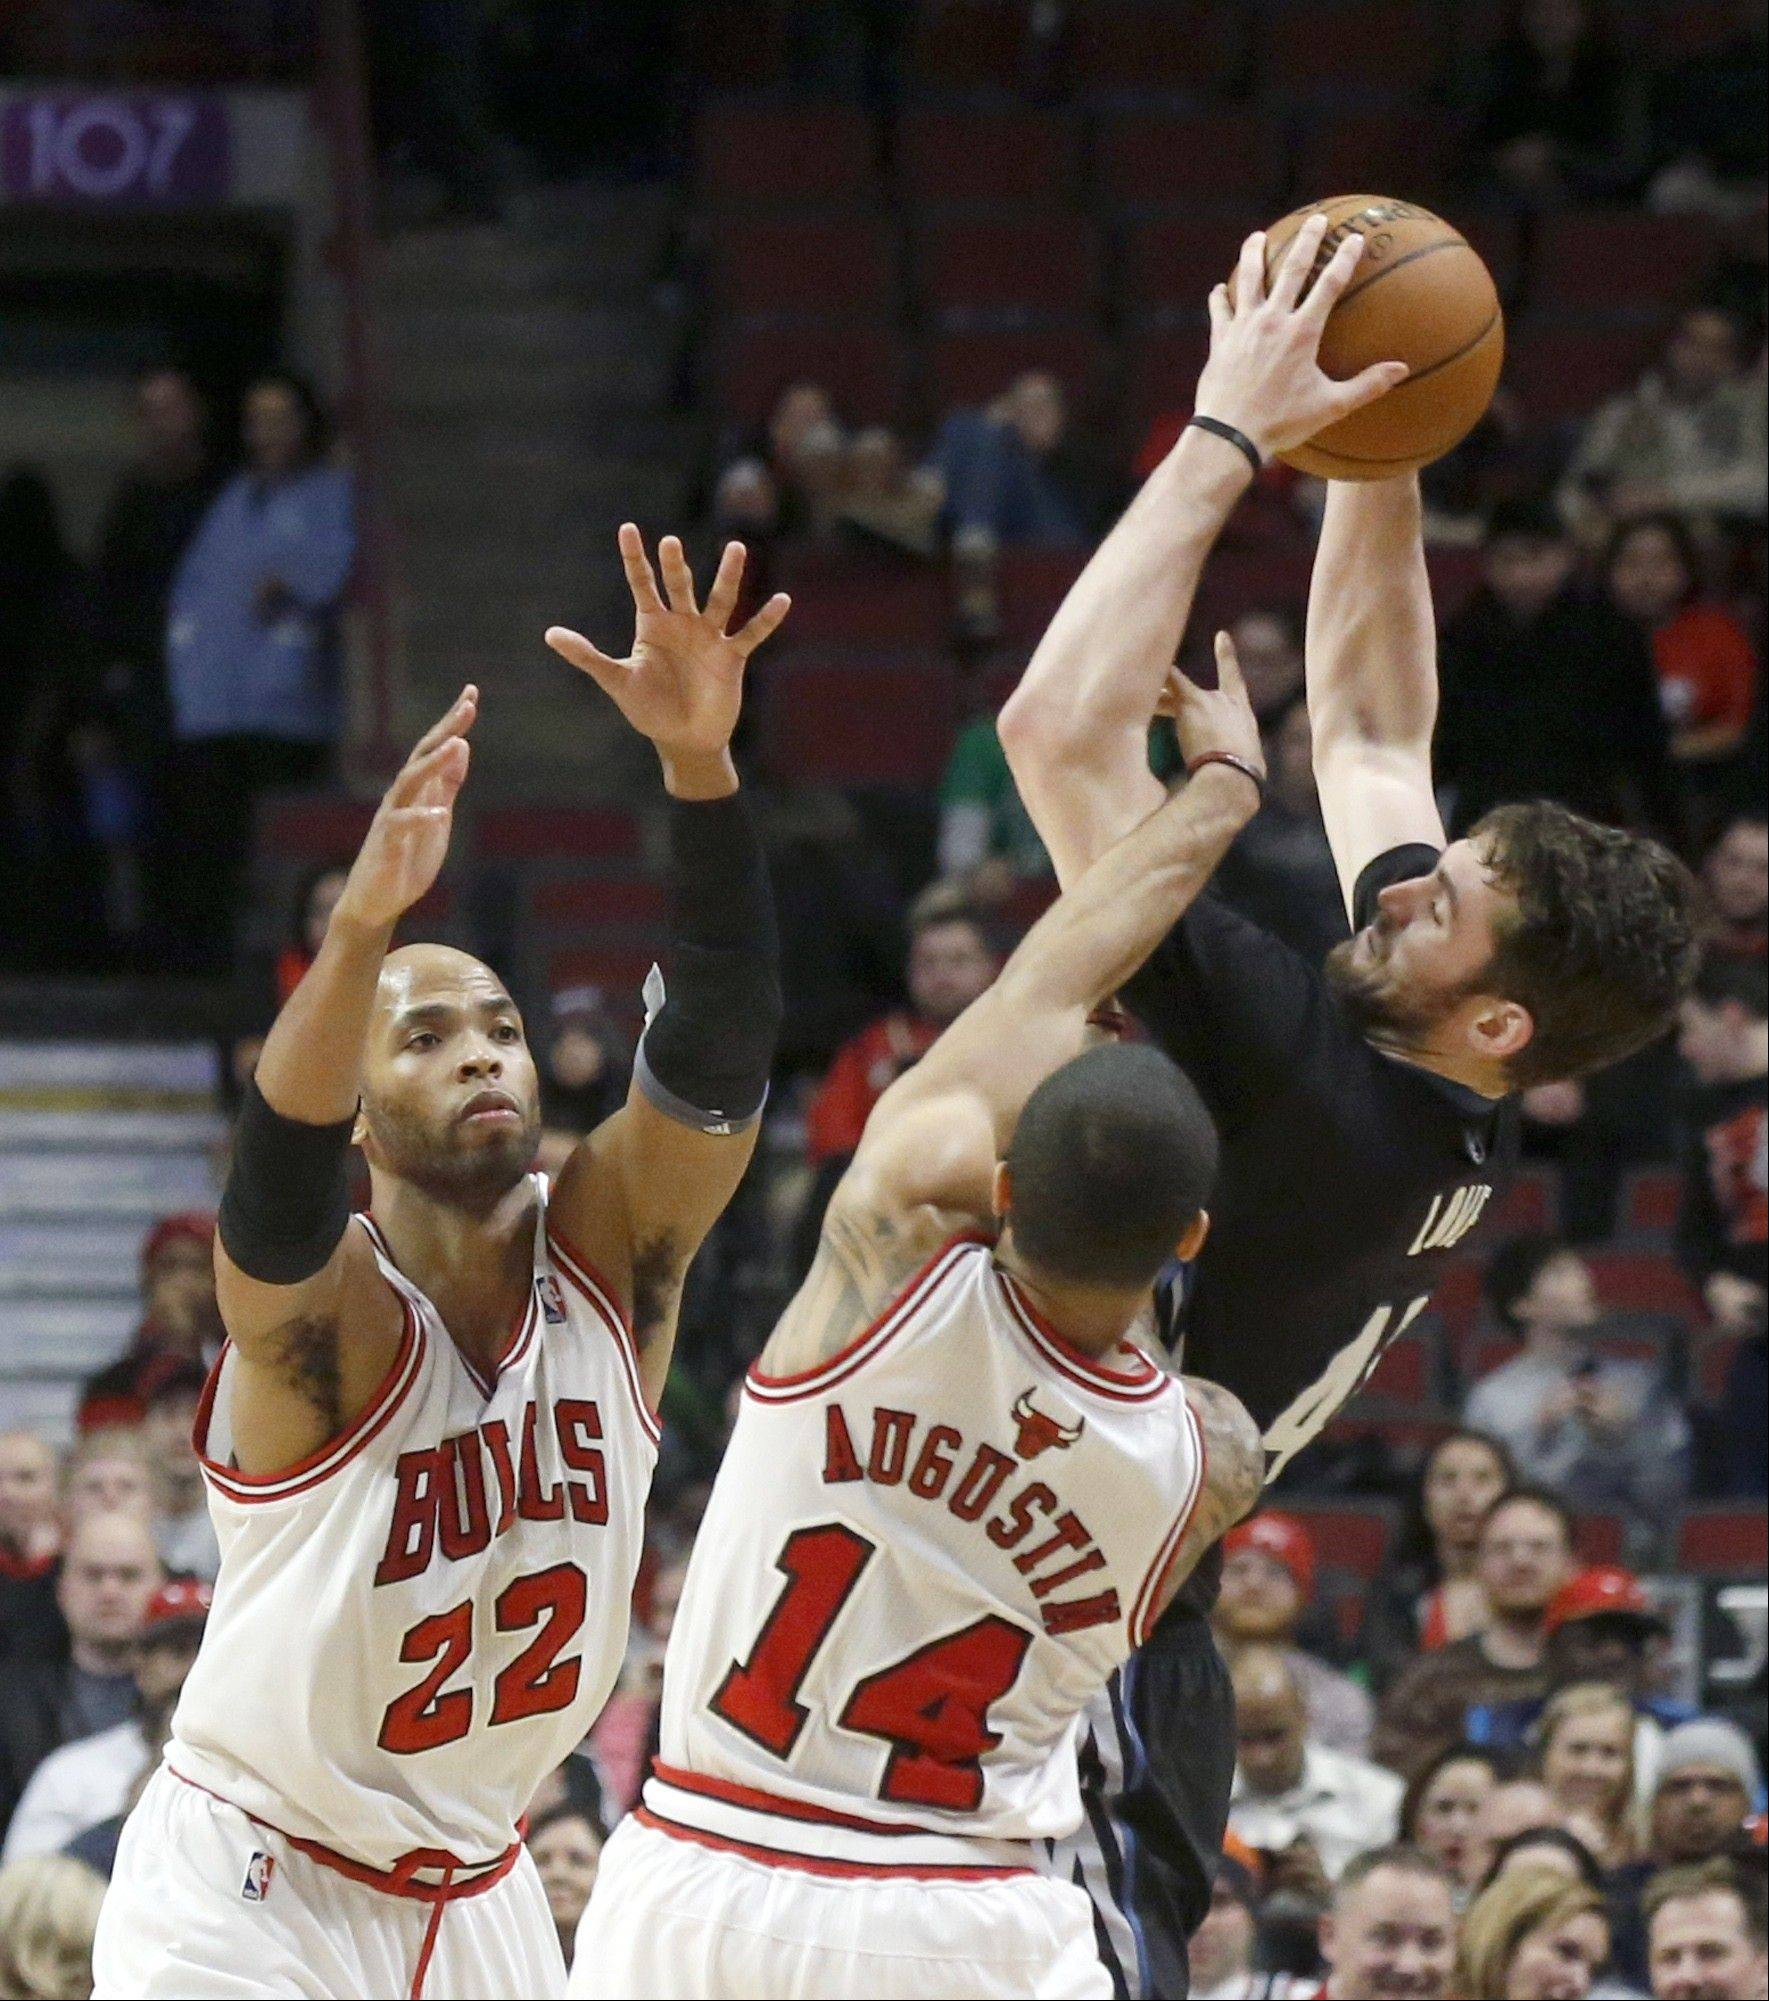 The Timberwolves' Kevin Love is fouled by Bulls guard D.J. Augustin as Taj Gibson also defends during the second half Monday night. Love finished with 31 points.